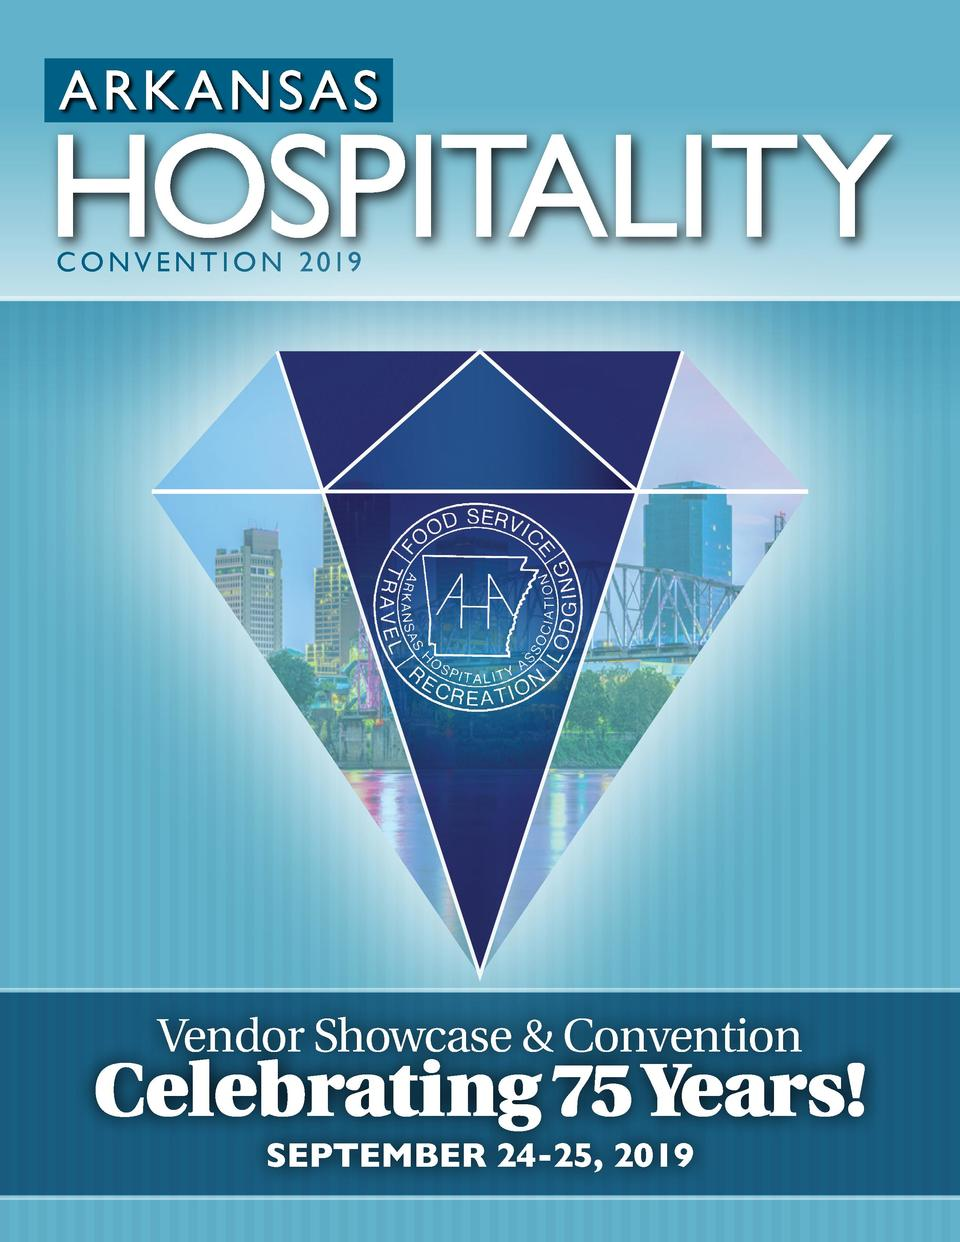 C O N V E N T I O N 2 019  Vendor Showcase   Convention  Celebrating 75 Years  SEPTEMBER 24-25, 2019